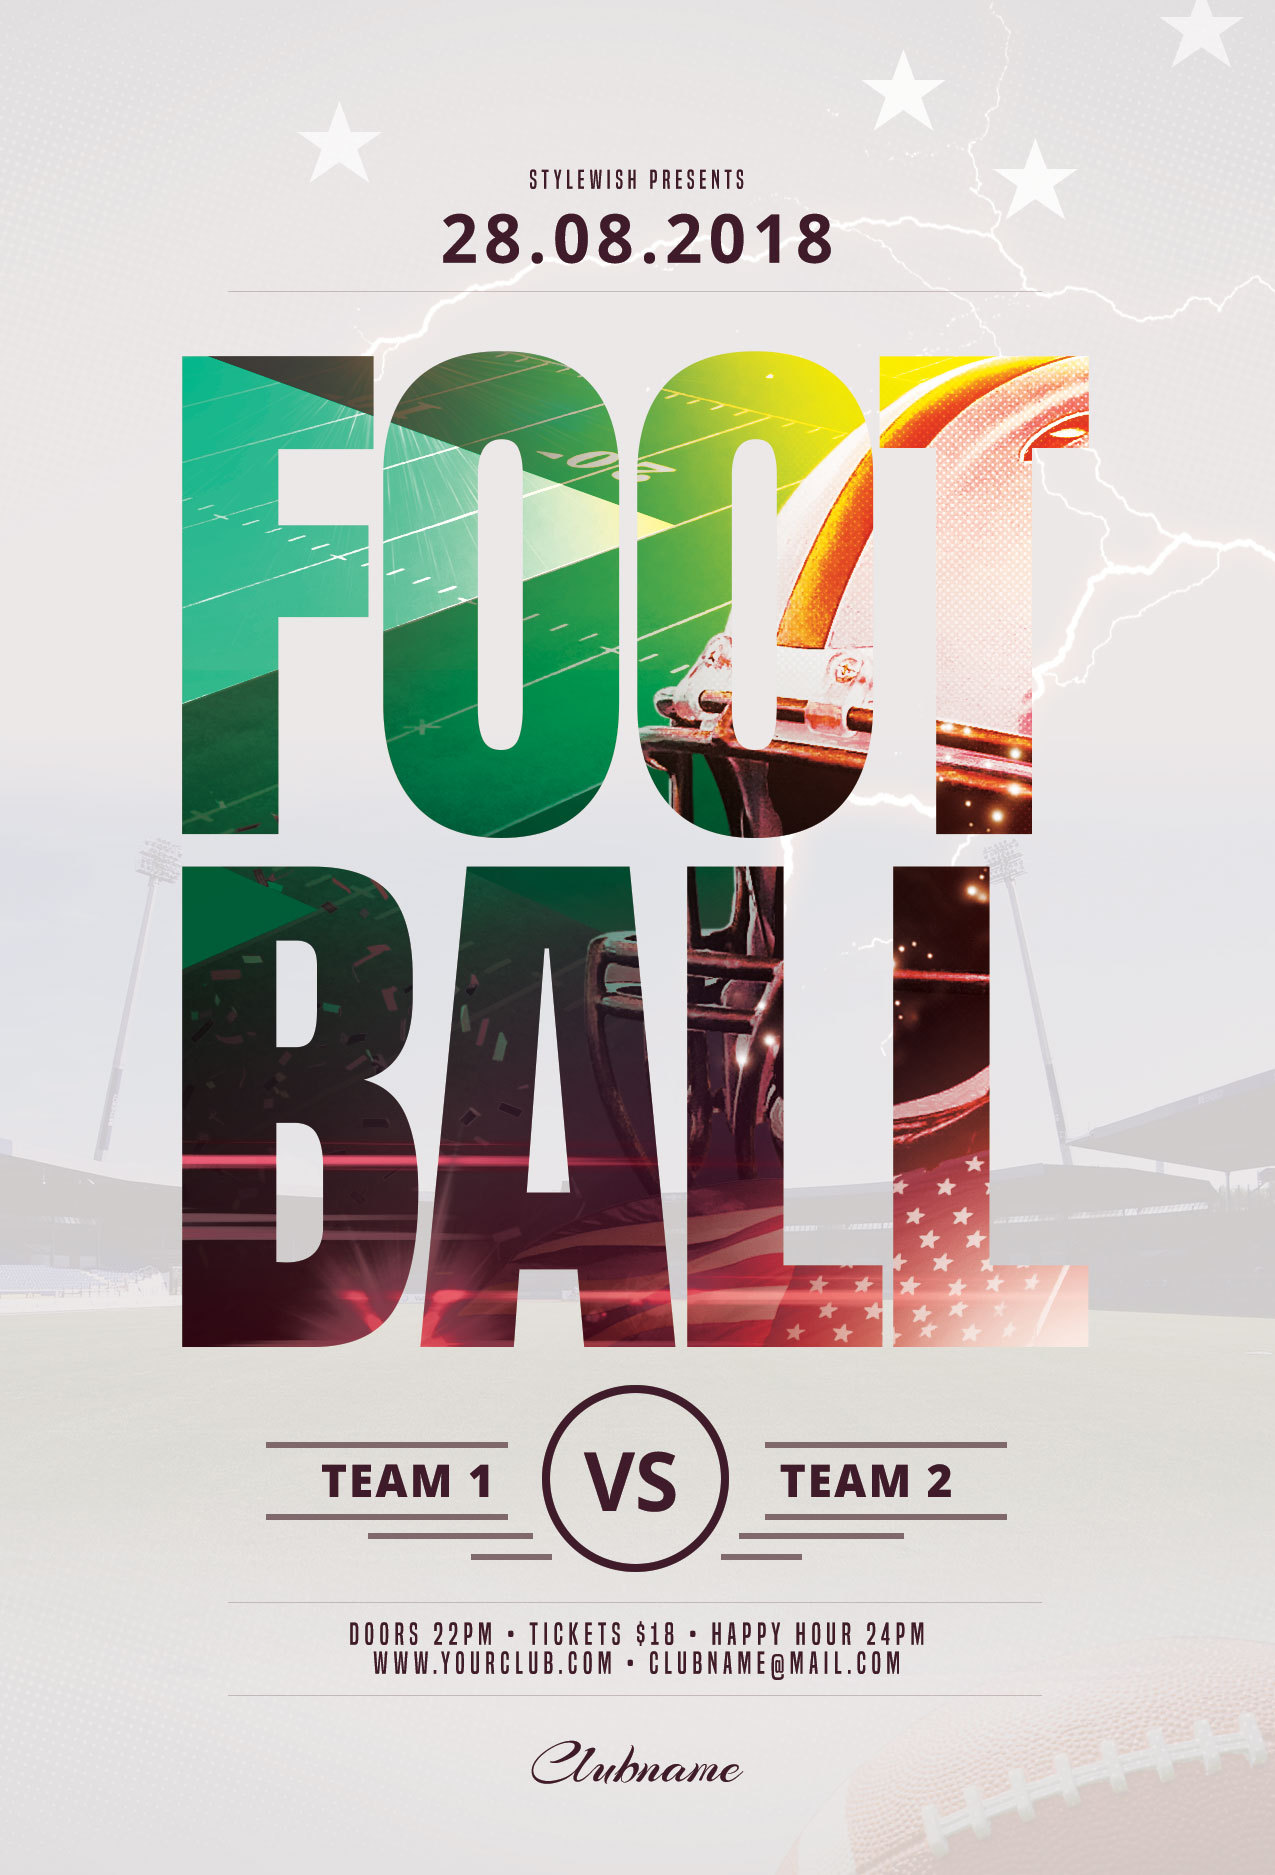 Football Flyer Template. Download The Psd Design For $9 At Graphicriver.